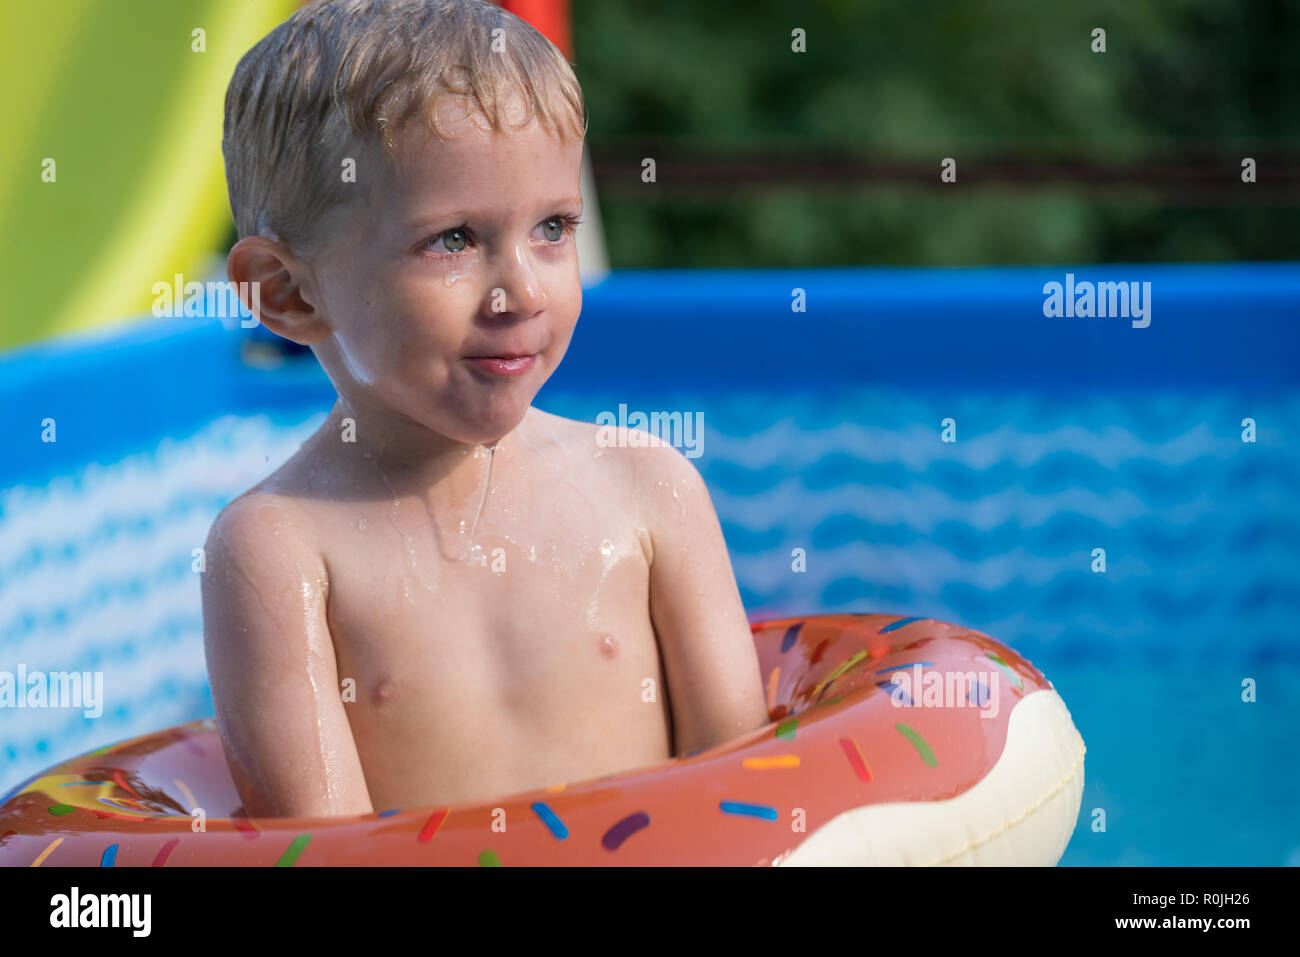 Happy little boy playing with colorful inflatable ring in outdoor swimming pool on hot summer day. Kids learn to swim. Child water toys. Stock Photo